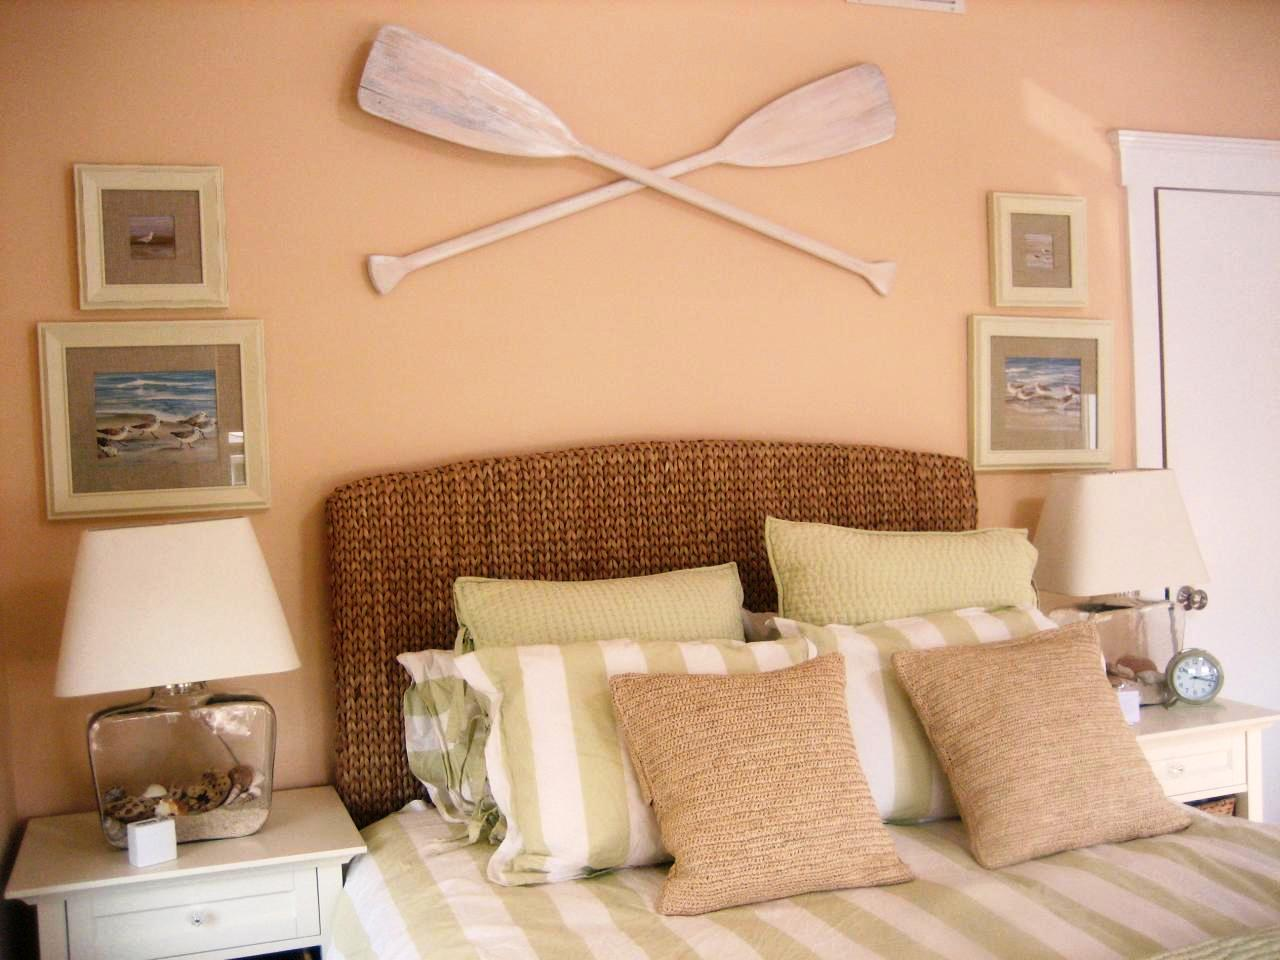 43-Pastel Colored Bedroom